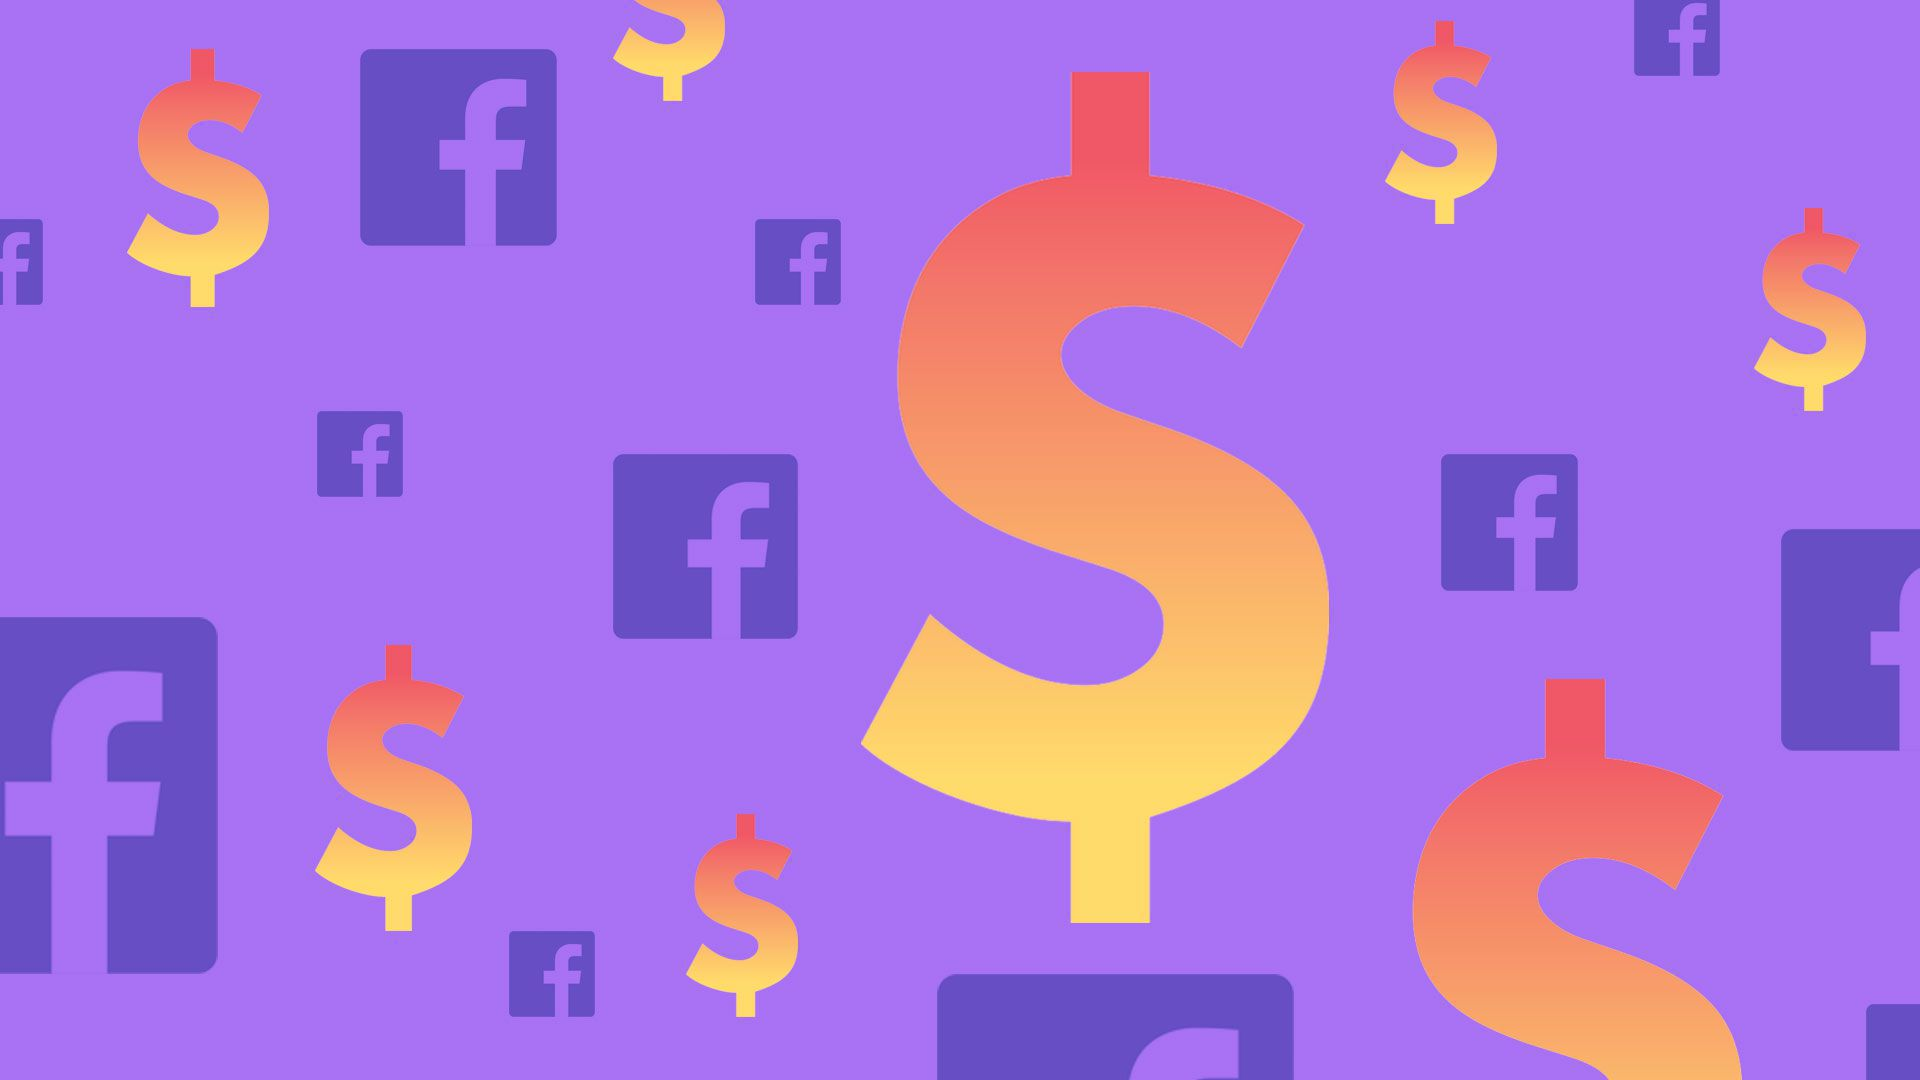 Illustration of facebook logo and dollar signs